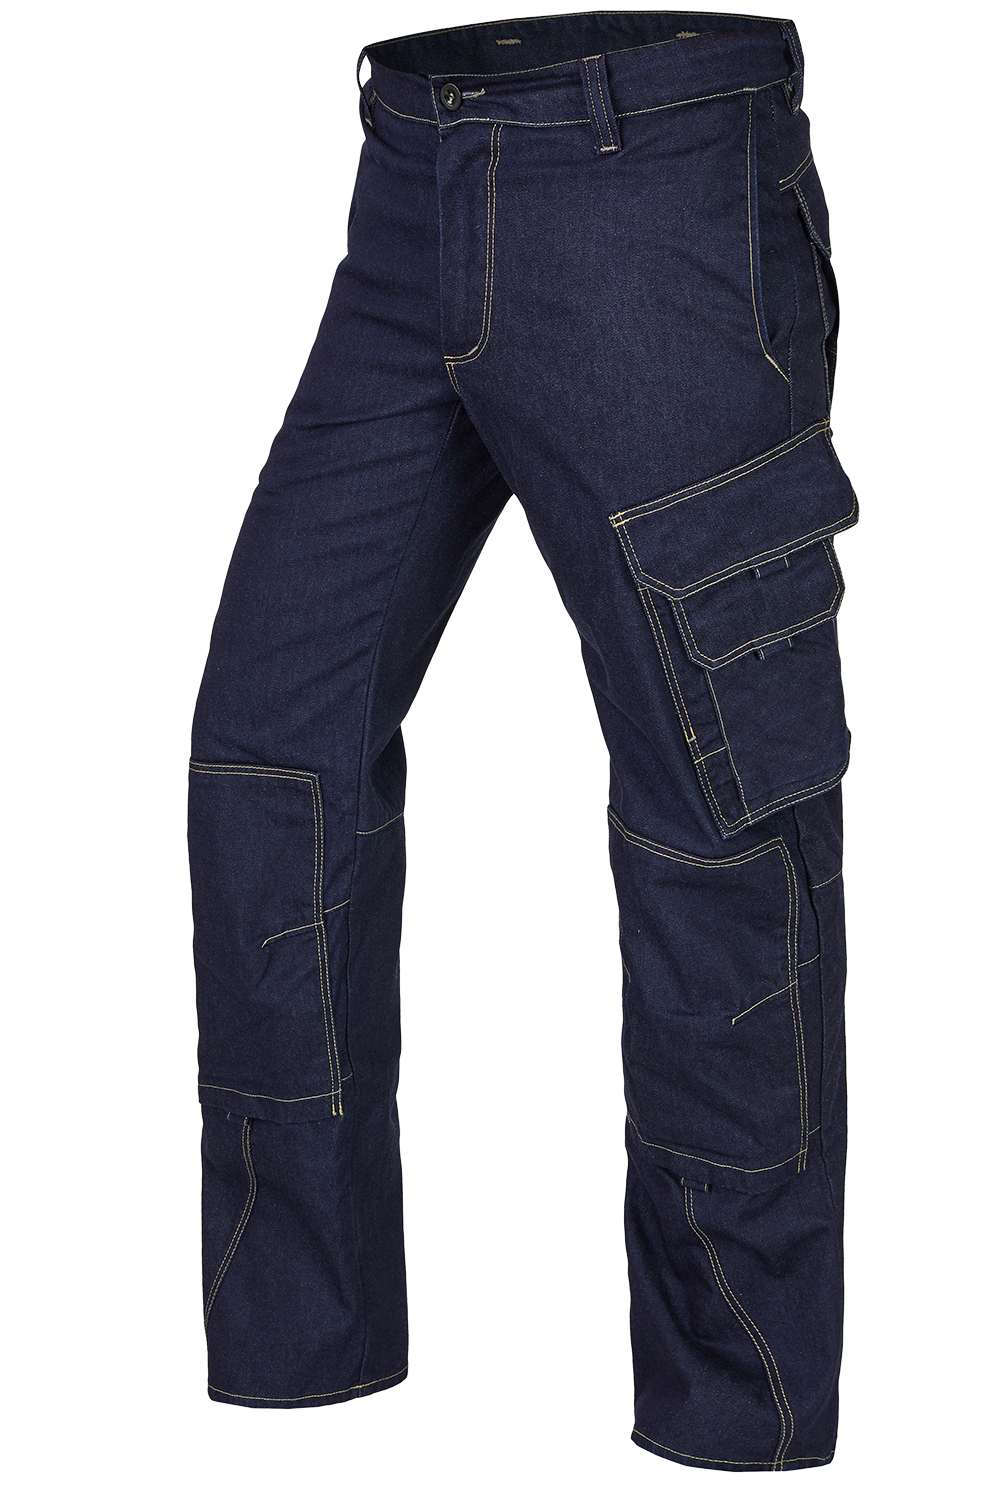 Hose Denim 2461